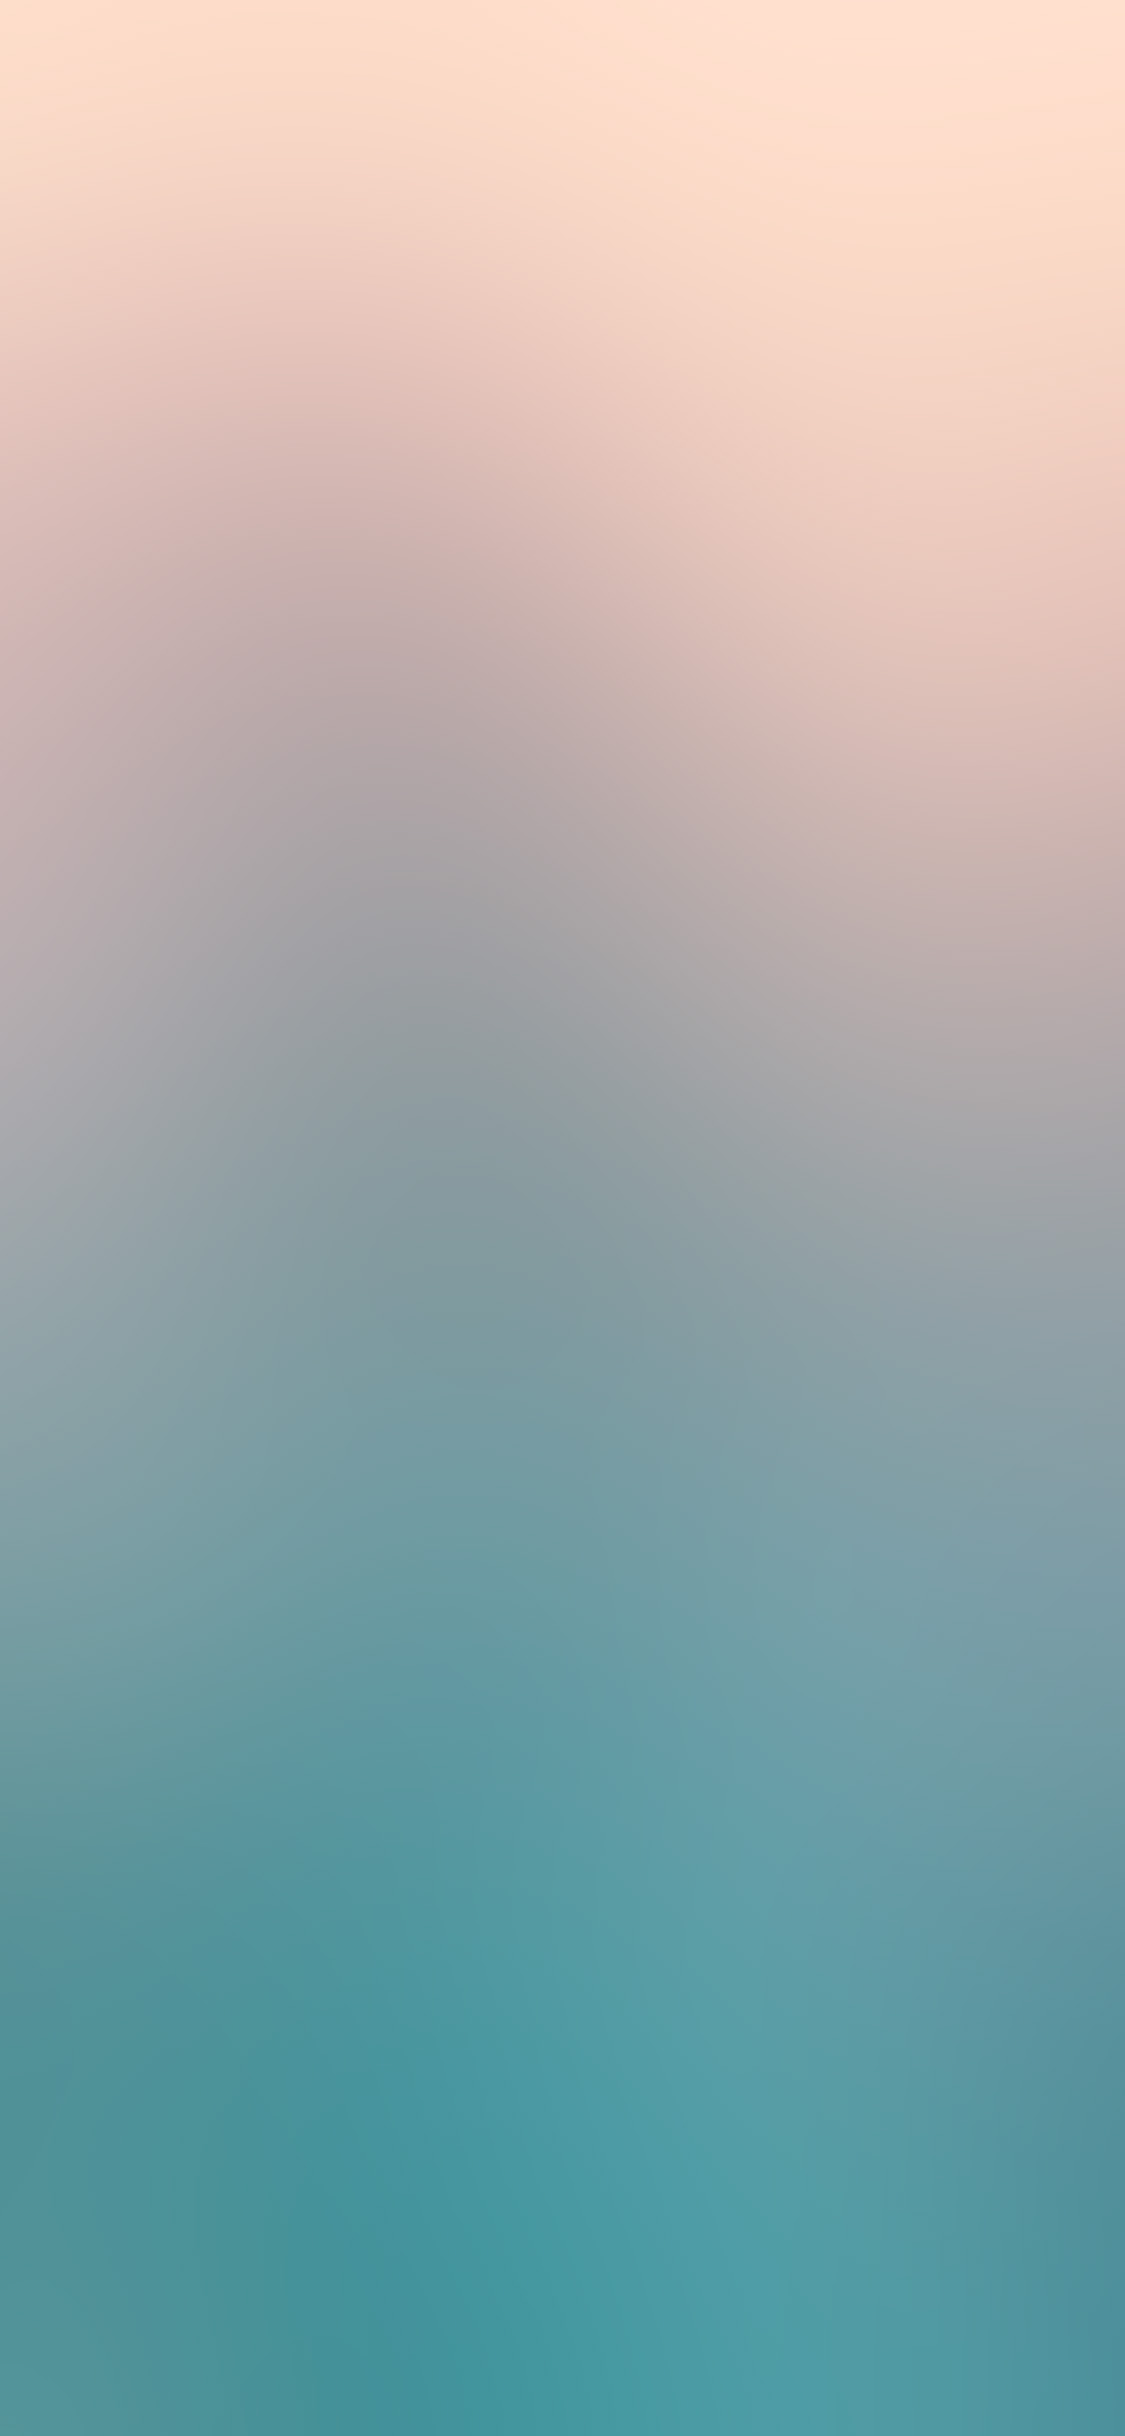 iPhonexpapers.com-Apple-iPhone-wallpaper-sm73-sky-soft-blur-gradation